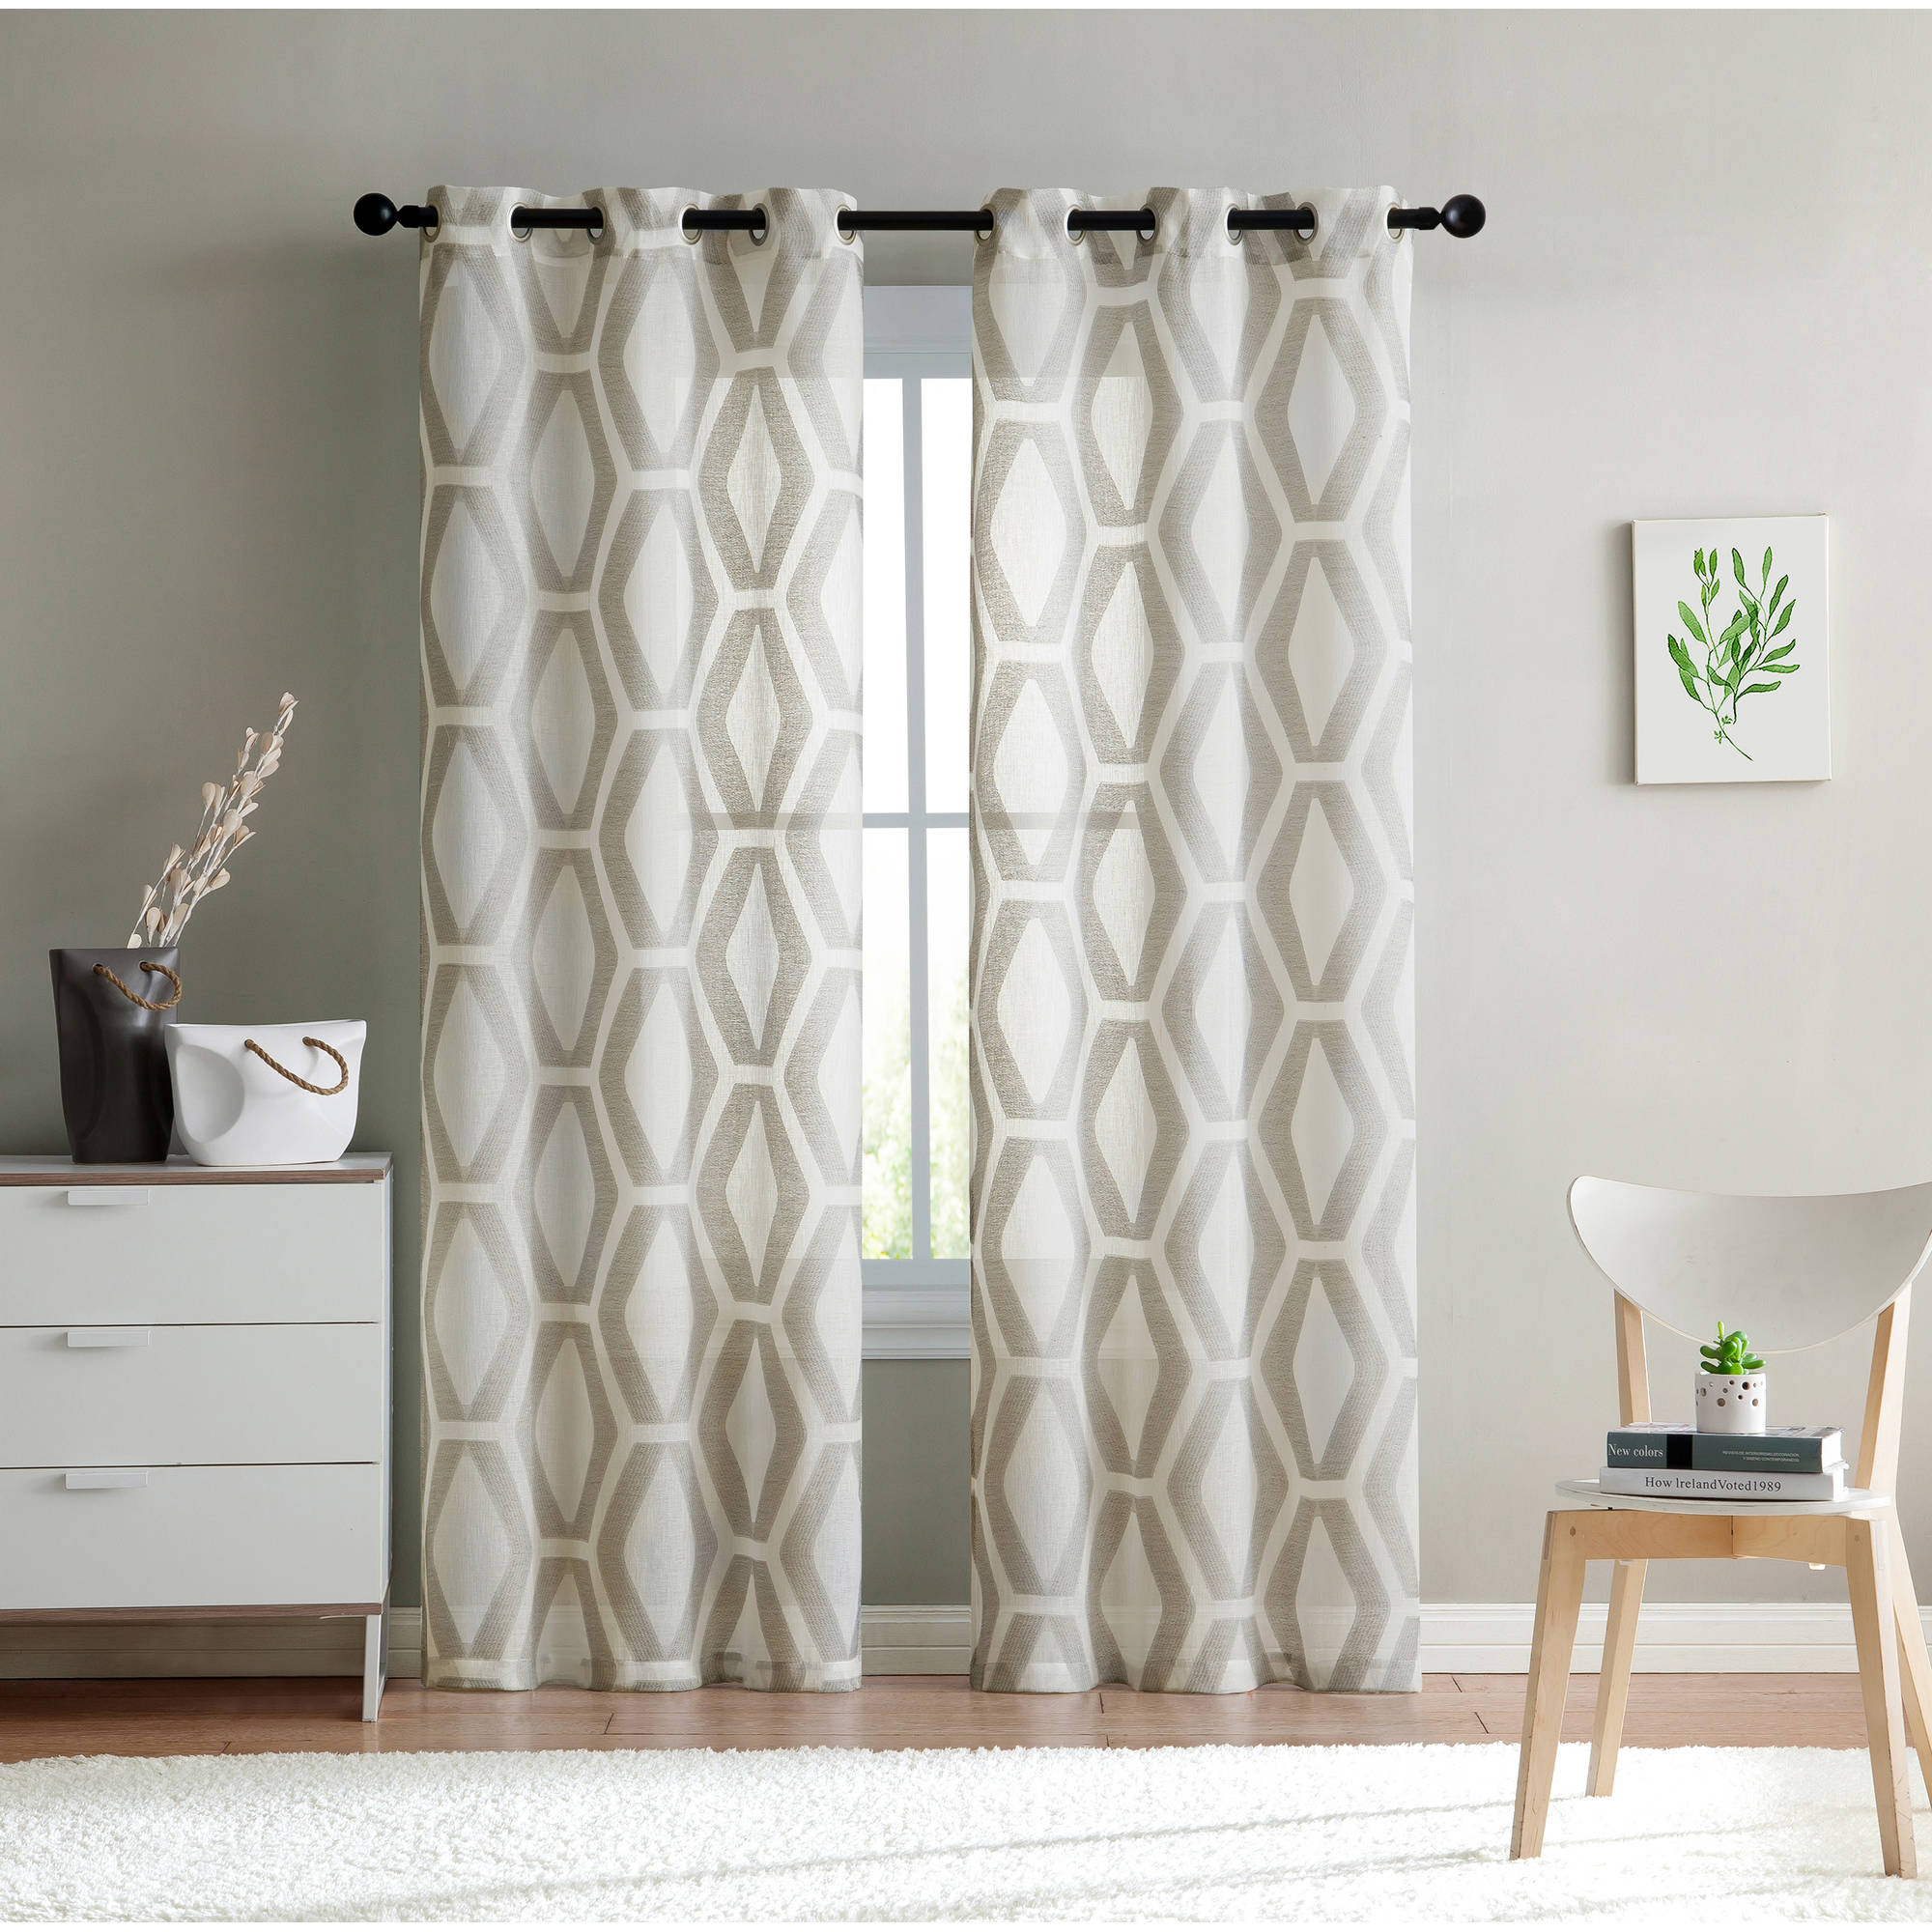 VCNY Home Geometric Embroidered Sheer Gabrielle Grommet Top Window Curtains, Set of 2, Multiple Sizes and Colors Available